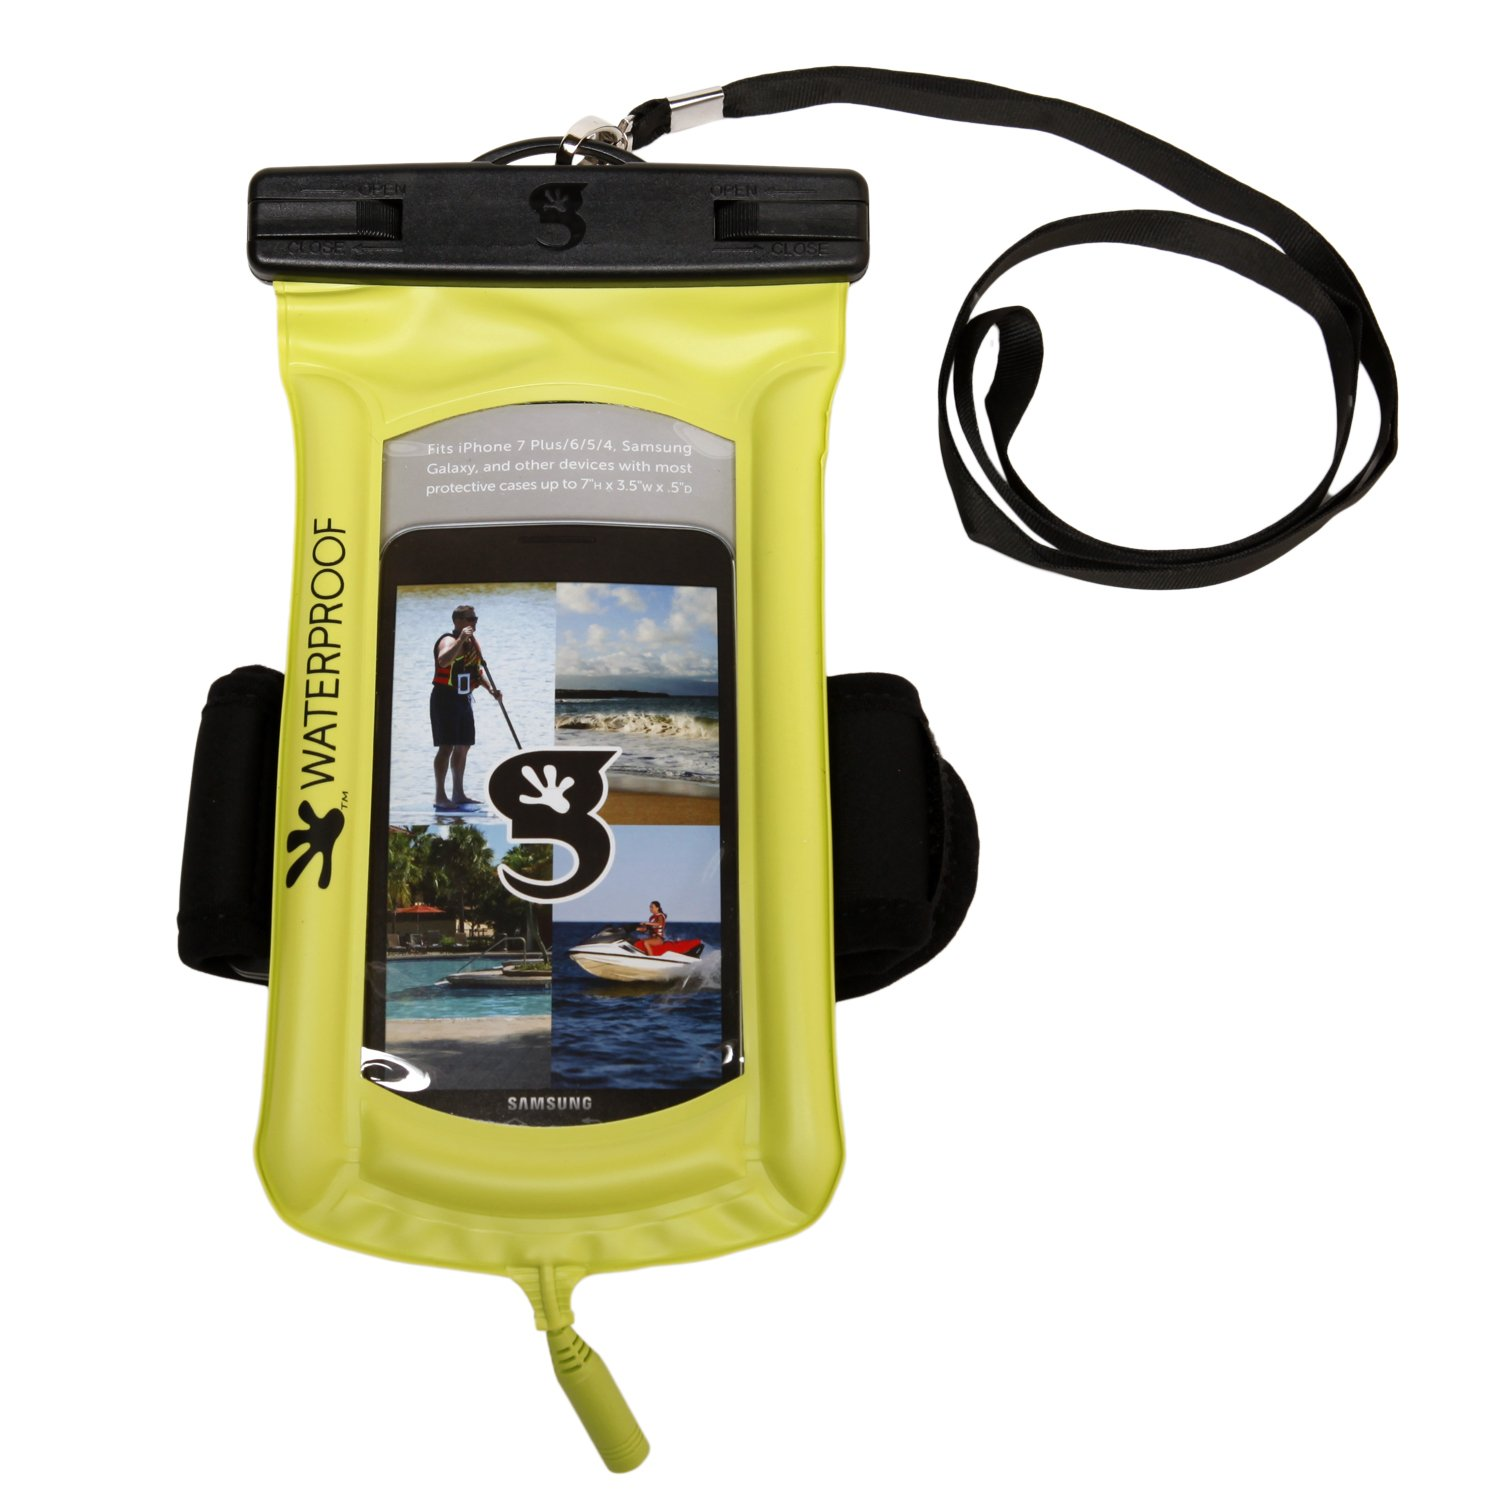 geckobrands Float Phone Dry Bag with Audio Cord & Arm Band- Bright Green